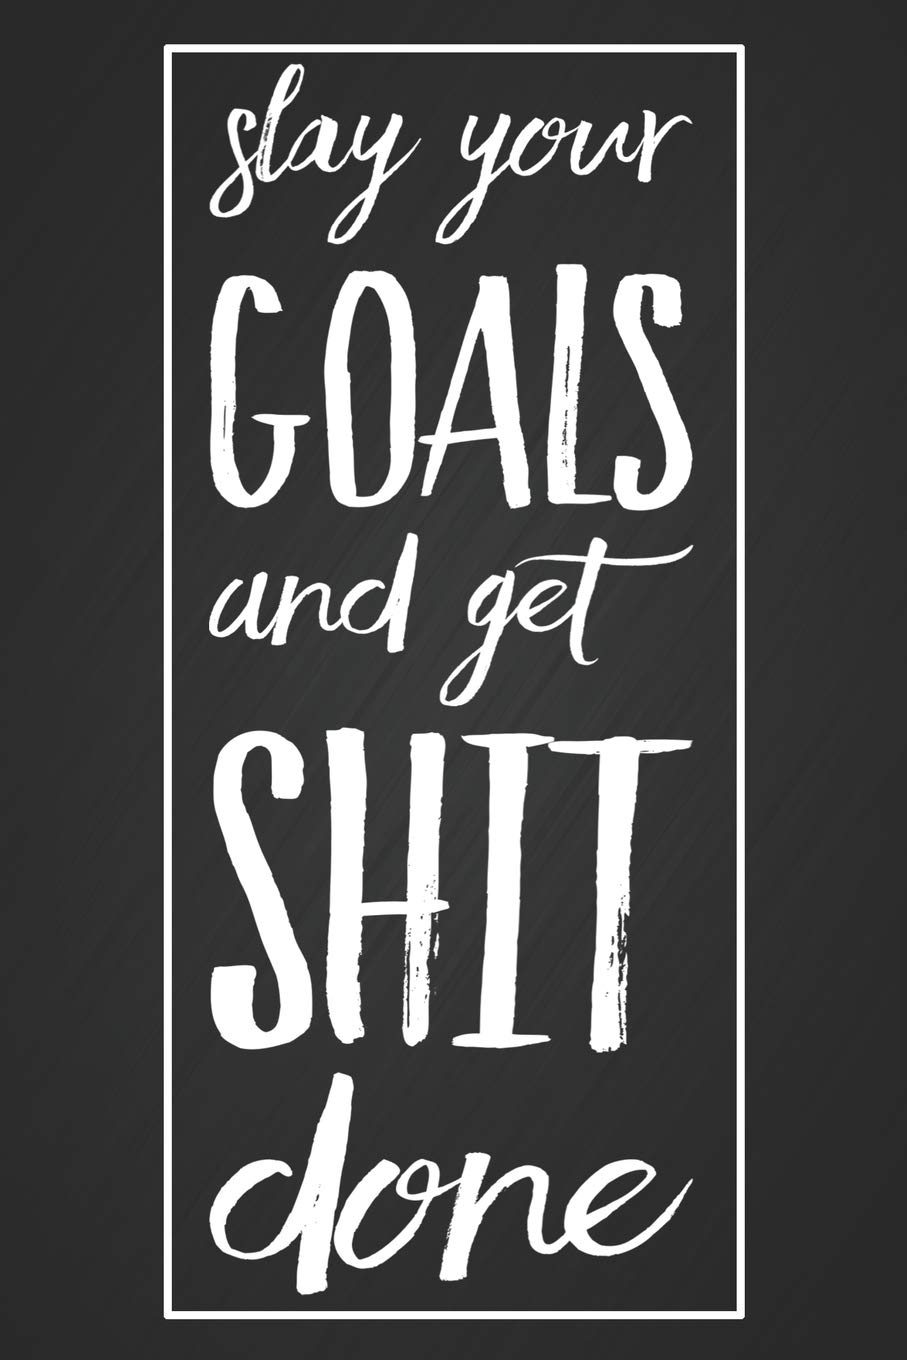 Amazon.com: Slay your Goals and Get Shit Done: 3-in-1 Daily ...